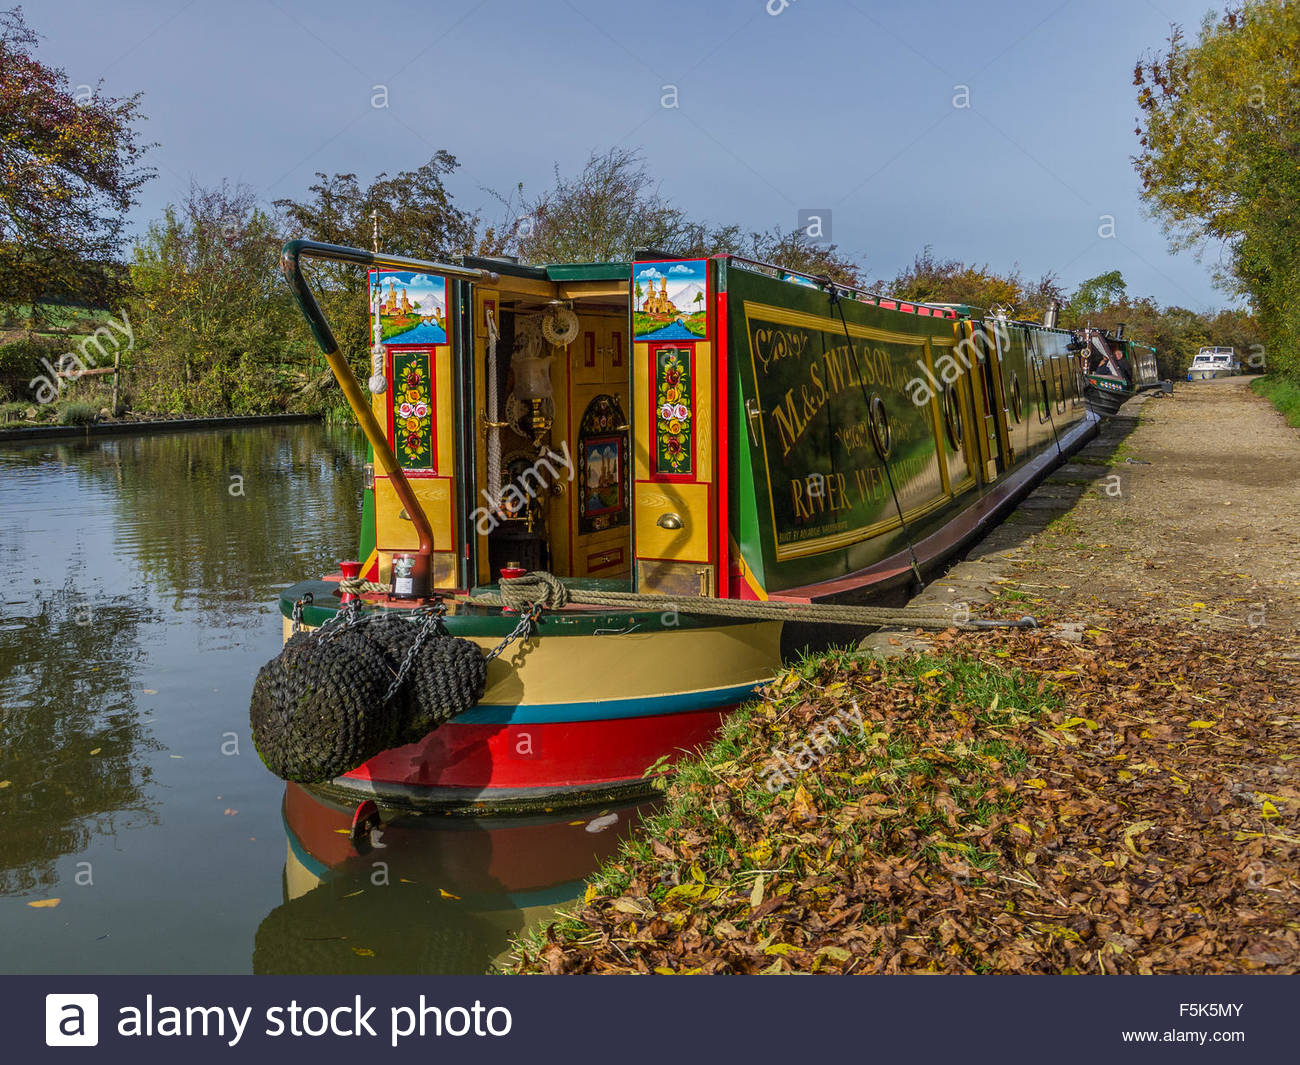 Foxton locks on the grand union canal Leicestershire England UK GB - Stock Image